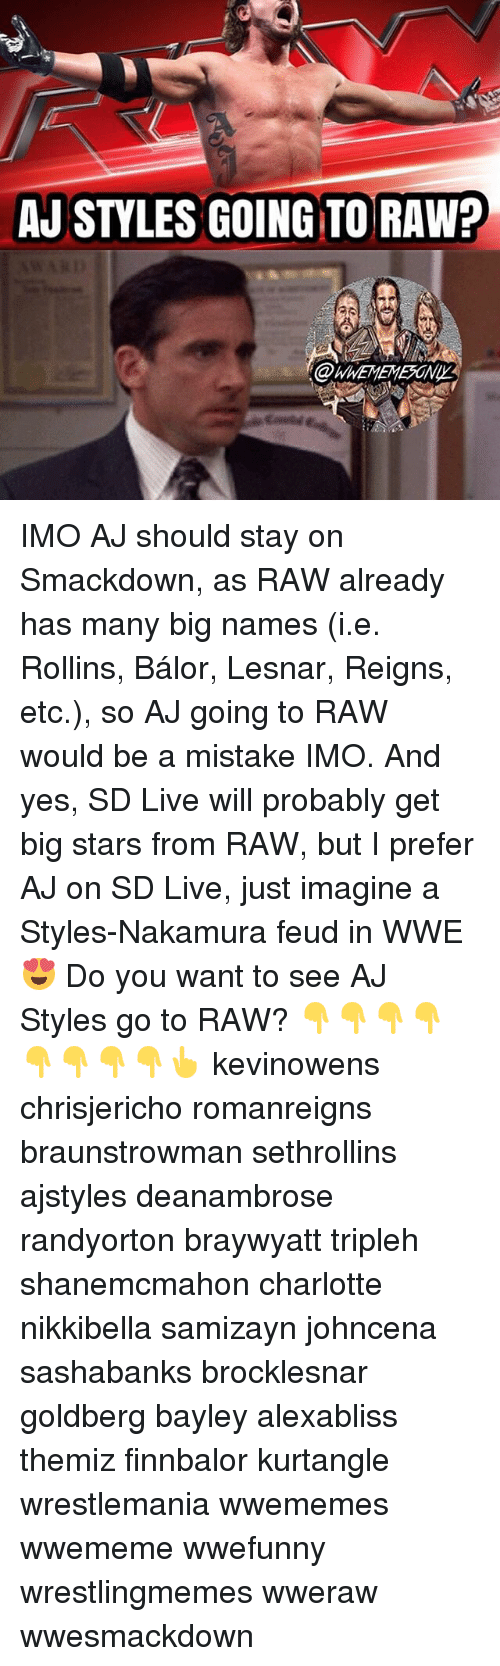 rollins: AJ STYLES GOING TO RAW? IMO AJ should stay on Smackdown, as RAW already has many big names (i.e. Rollins, Bálor, Lesnar, Reigns, etc.), so AJ going to RAW would be a mistake IMO. And yes, SD Live will probably get big stars from RAW, but I prefer AJ on SD Live, just imagine a Styles-Nakamura feud in WWE 😍 Do you want to see AJ Styles go to RAW? 👇👇👇👇👇👇👇👇👆 kevinowens chrisjericho romanreigns braunstrowman sethrollins ajstyles deanambrose randyorton braywyatt tripleh shanemcmahon charlotte nikkibella samizayn johncena sashabanks brocklesnar goldberg bayley alexabliss themiz finnbalor kurtangle wrestlemania wwememes wwememe wwefunny wrestlingmemes wweraw wwesmackdown